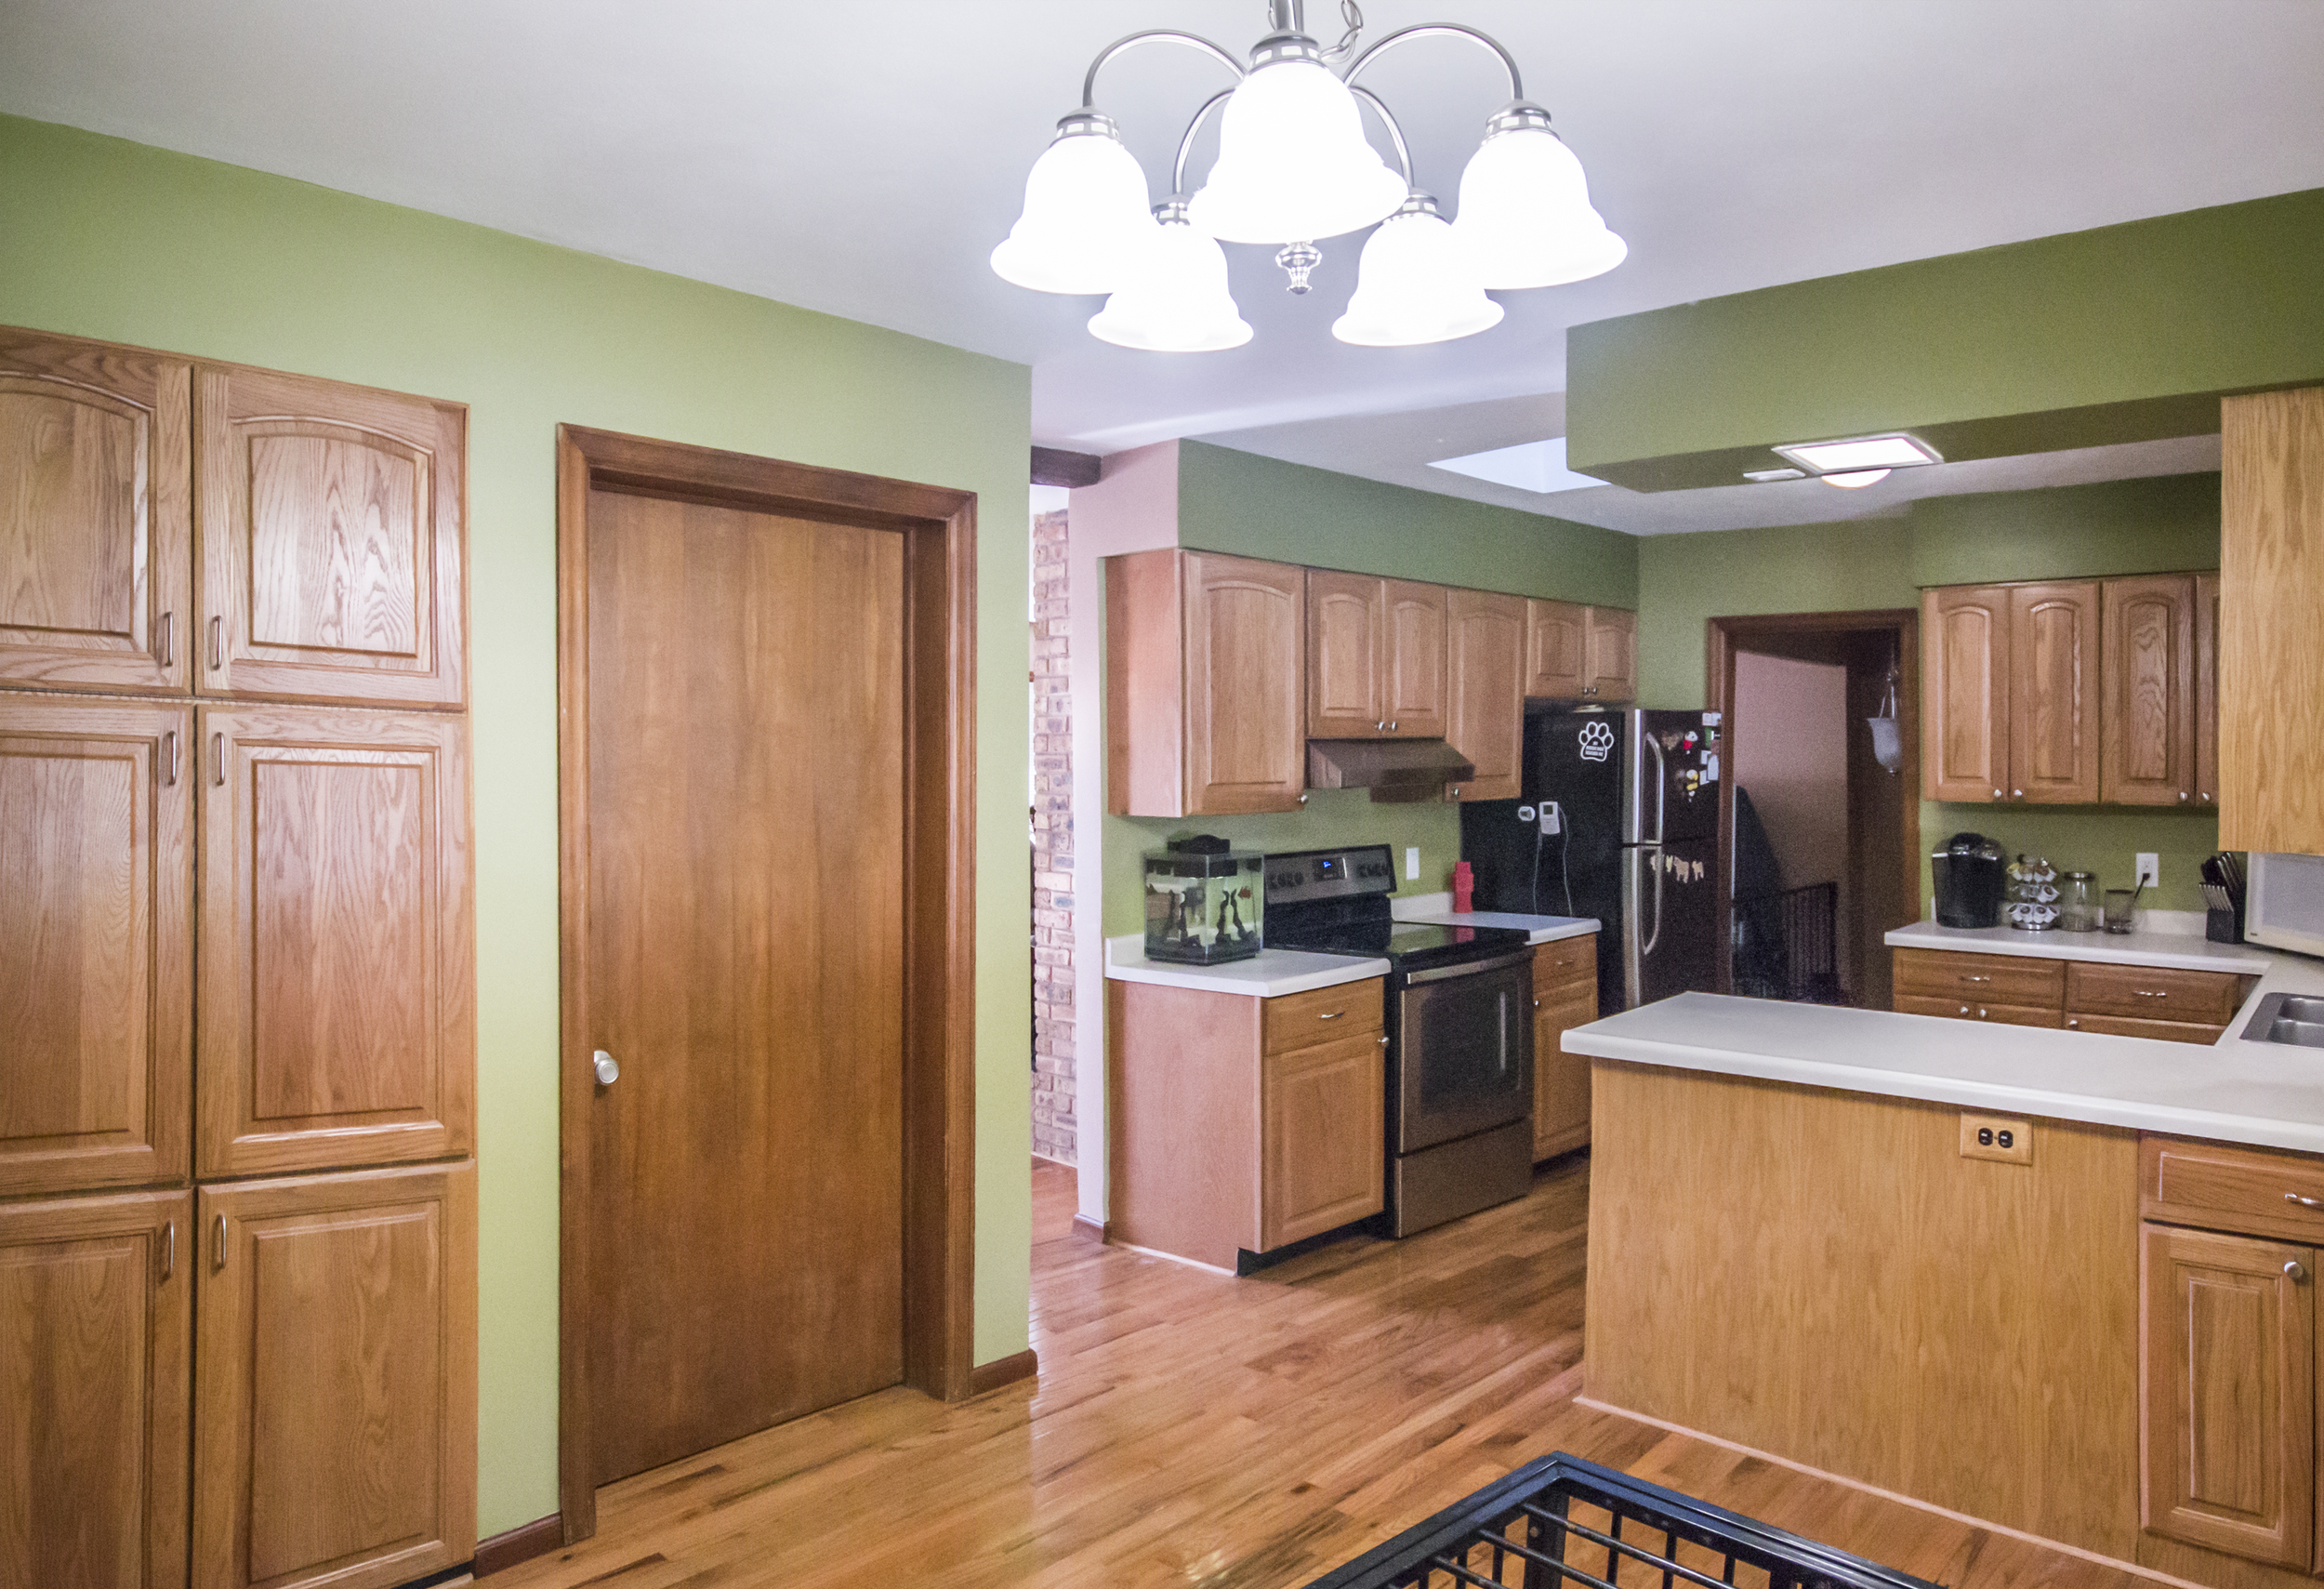 Changed: Green paint (darker green above cabinets), new lighting fixture, new knob for laundry room door.